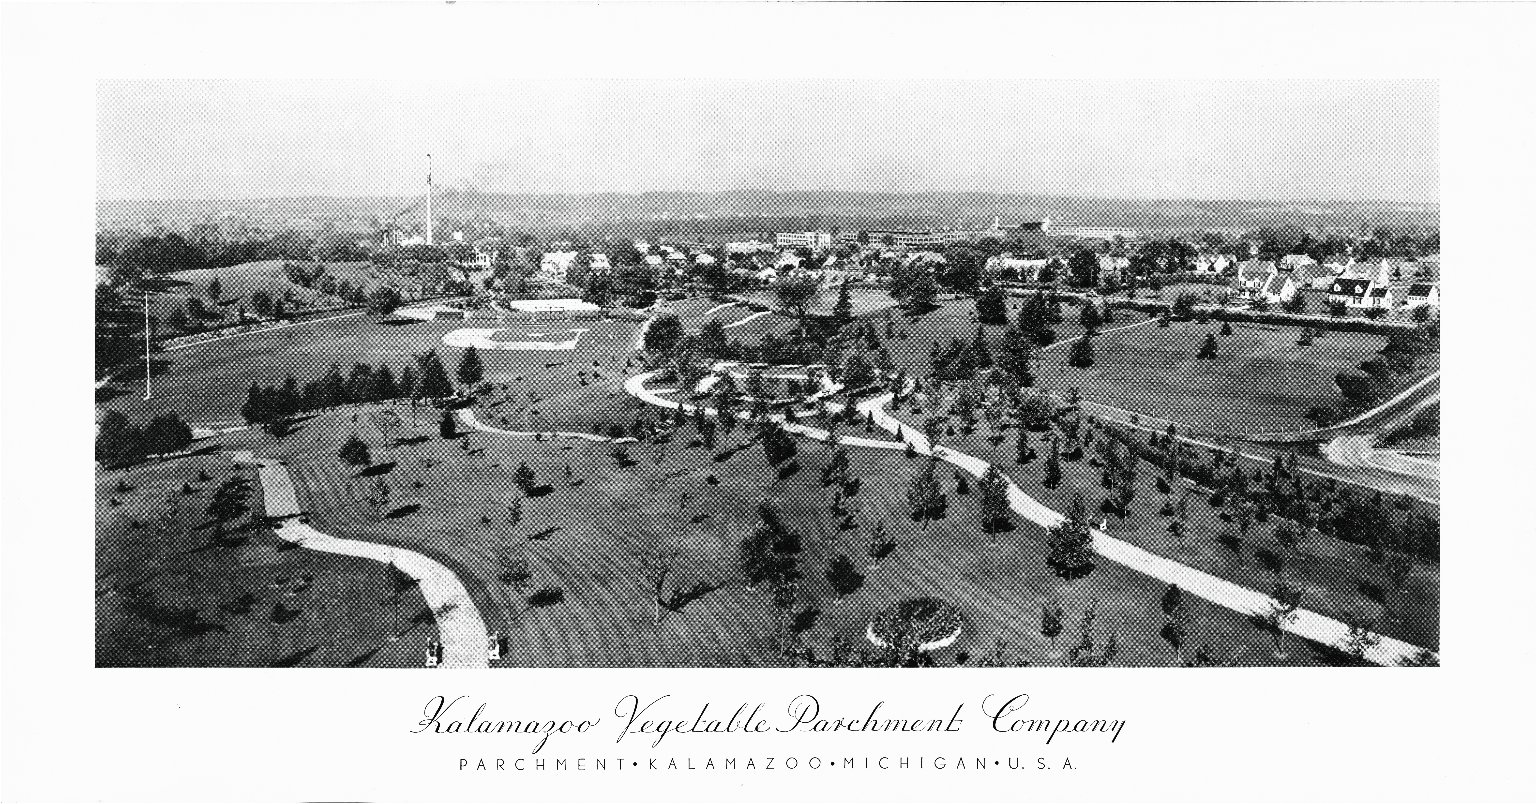 Aerial view of Kalamazoo Vegetable Parchment Plant, printed poster